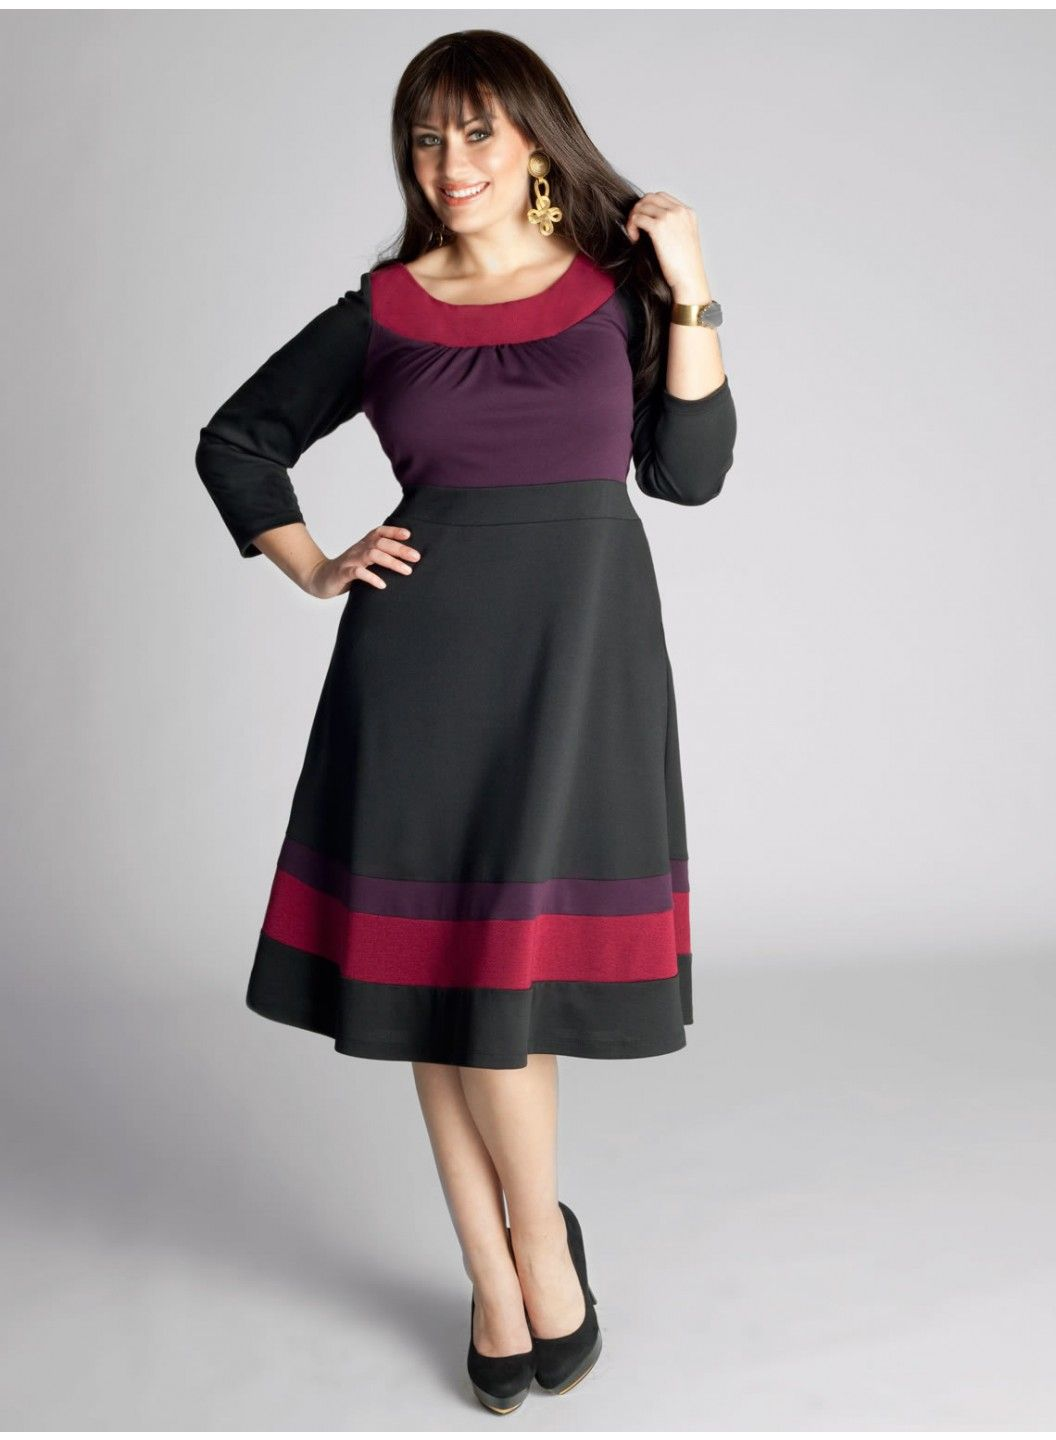 Nellie Colorblock Dress In Berry Yay For Beautiful Plus Size